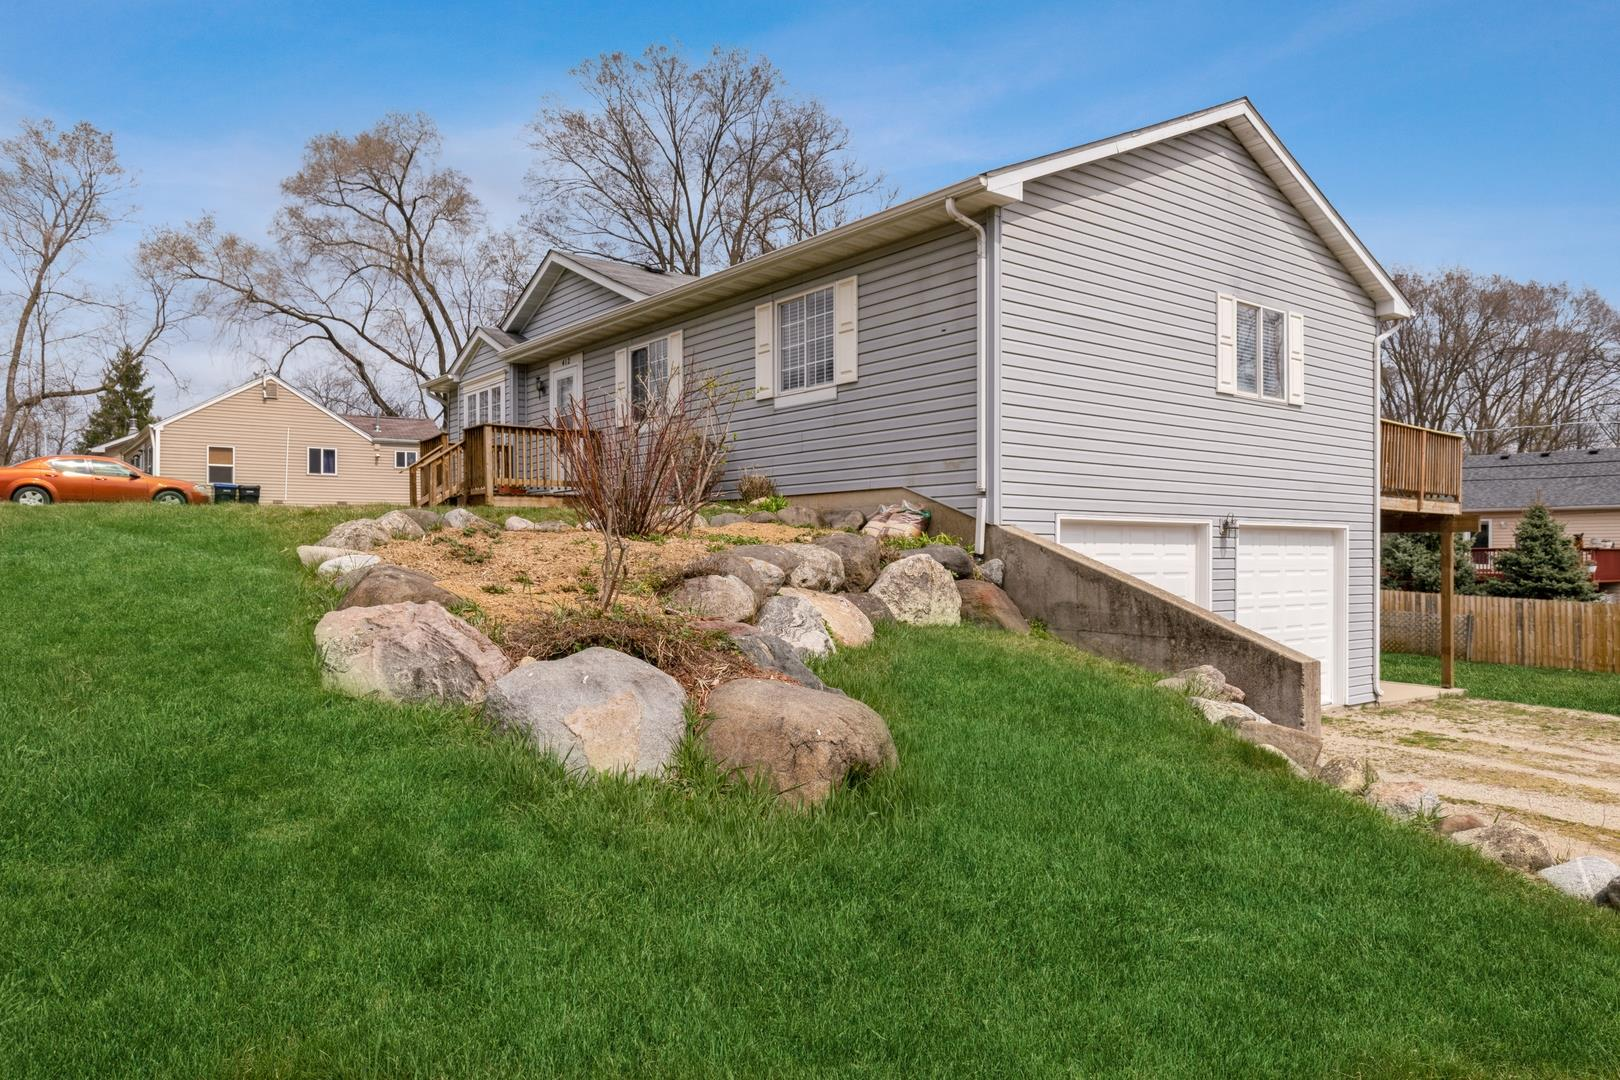 412 N Cresthill Avenue, McHenry, IL 60051 - #: 11038061